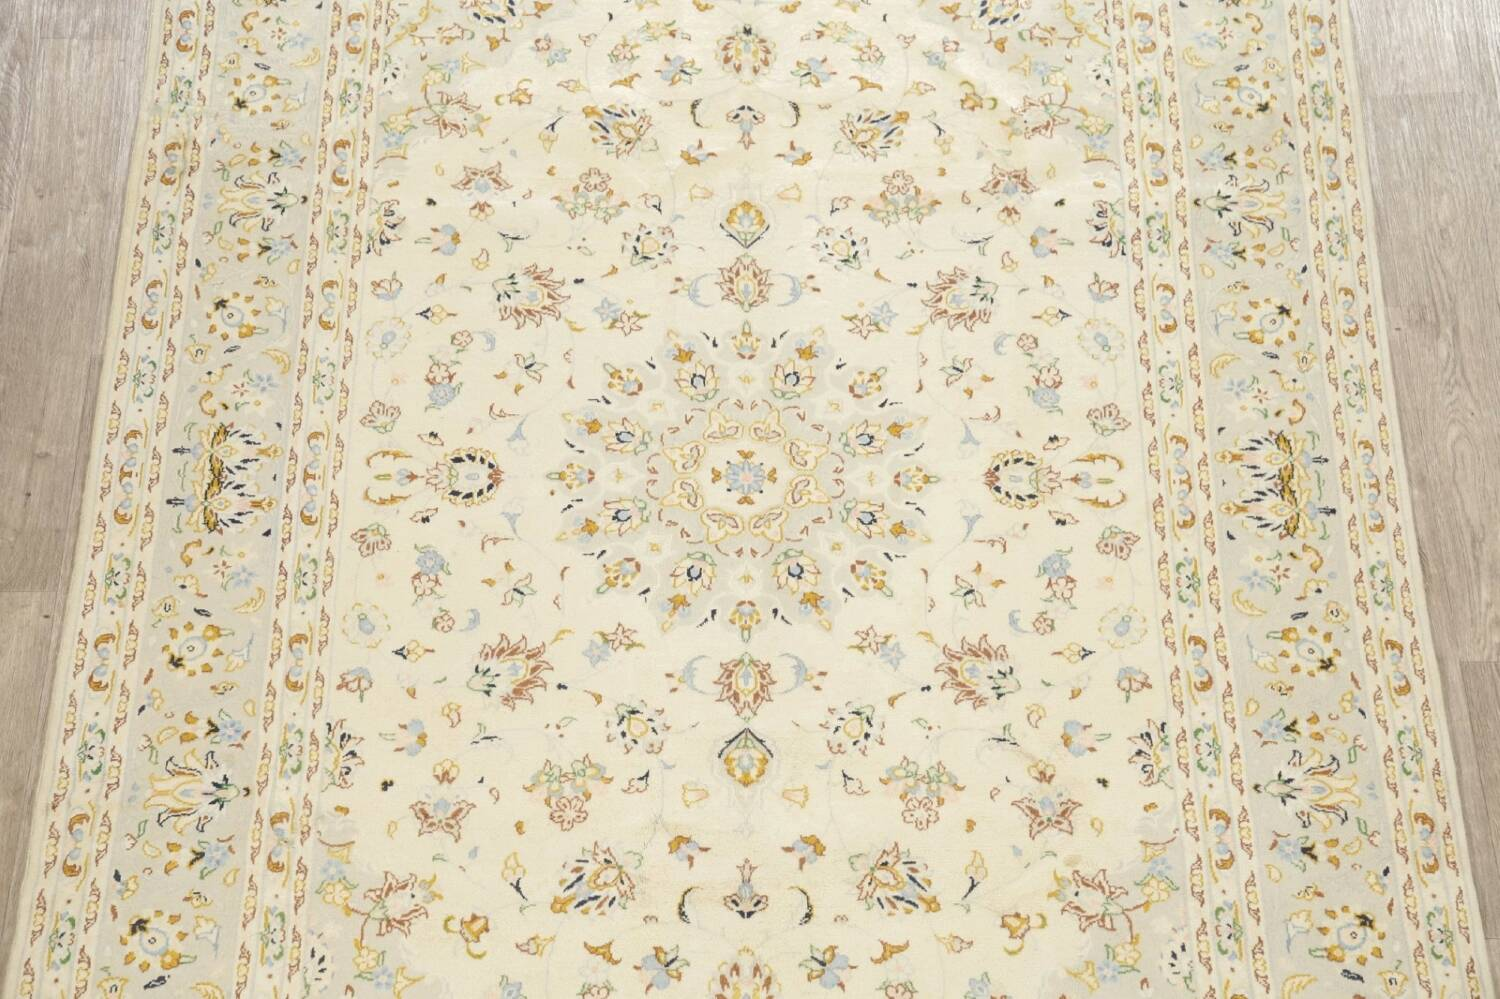 Floral Kashan Persian Area Rug 6x10 image 3